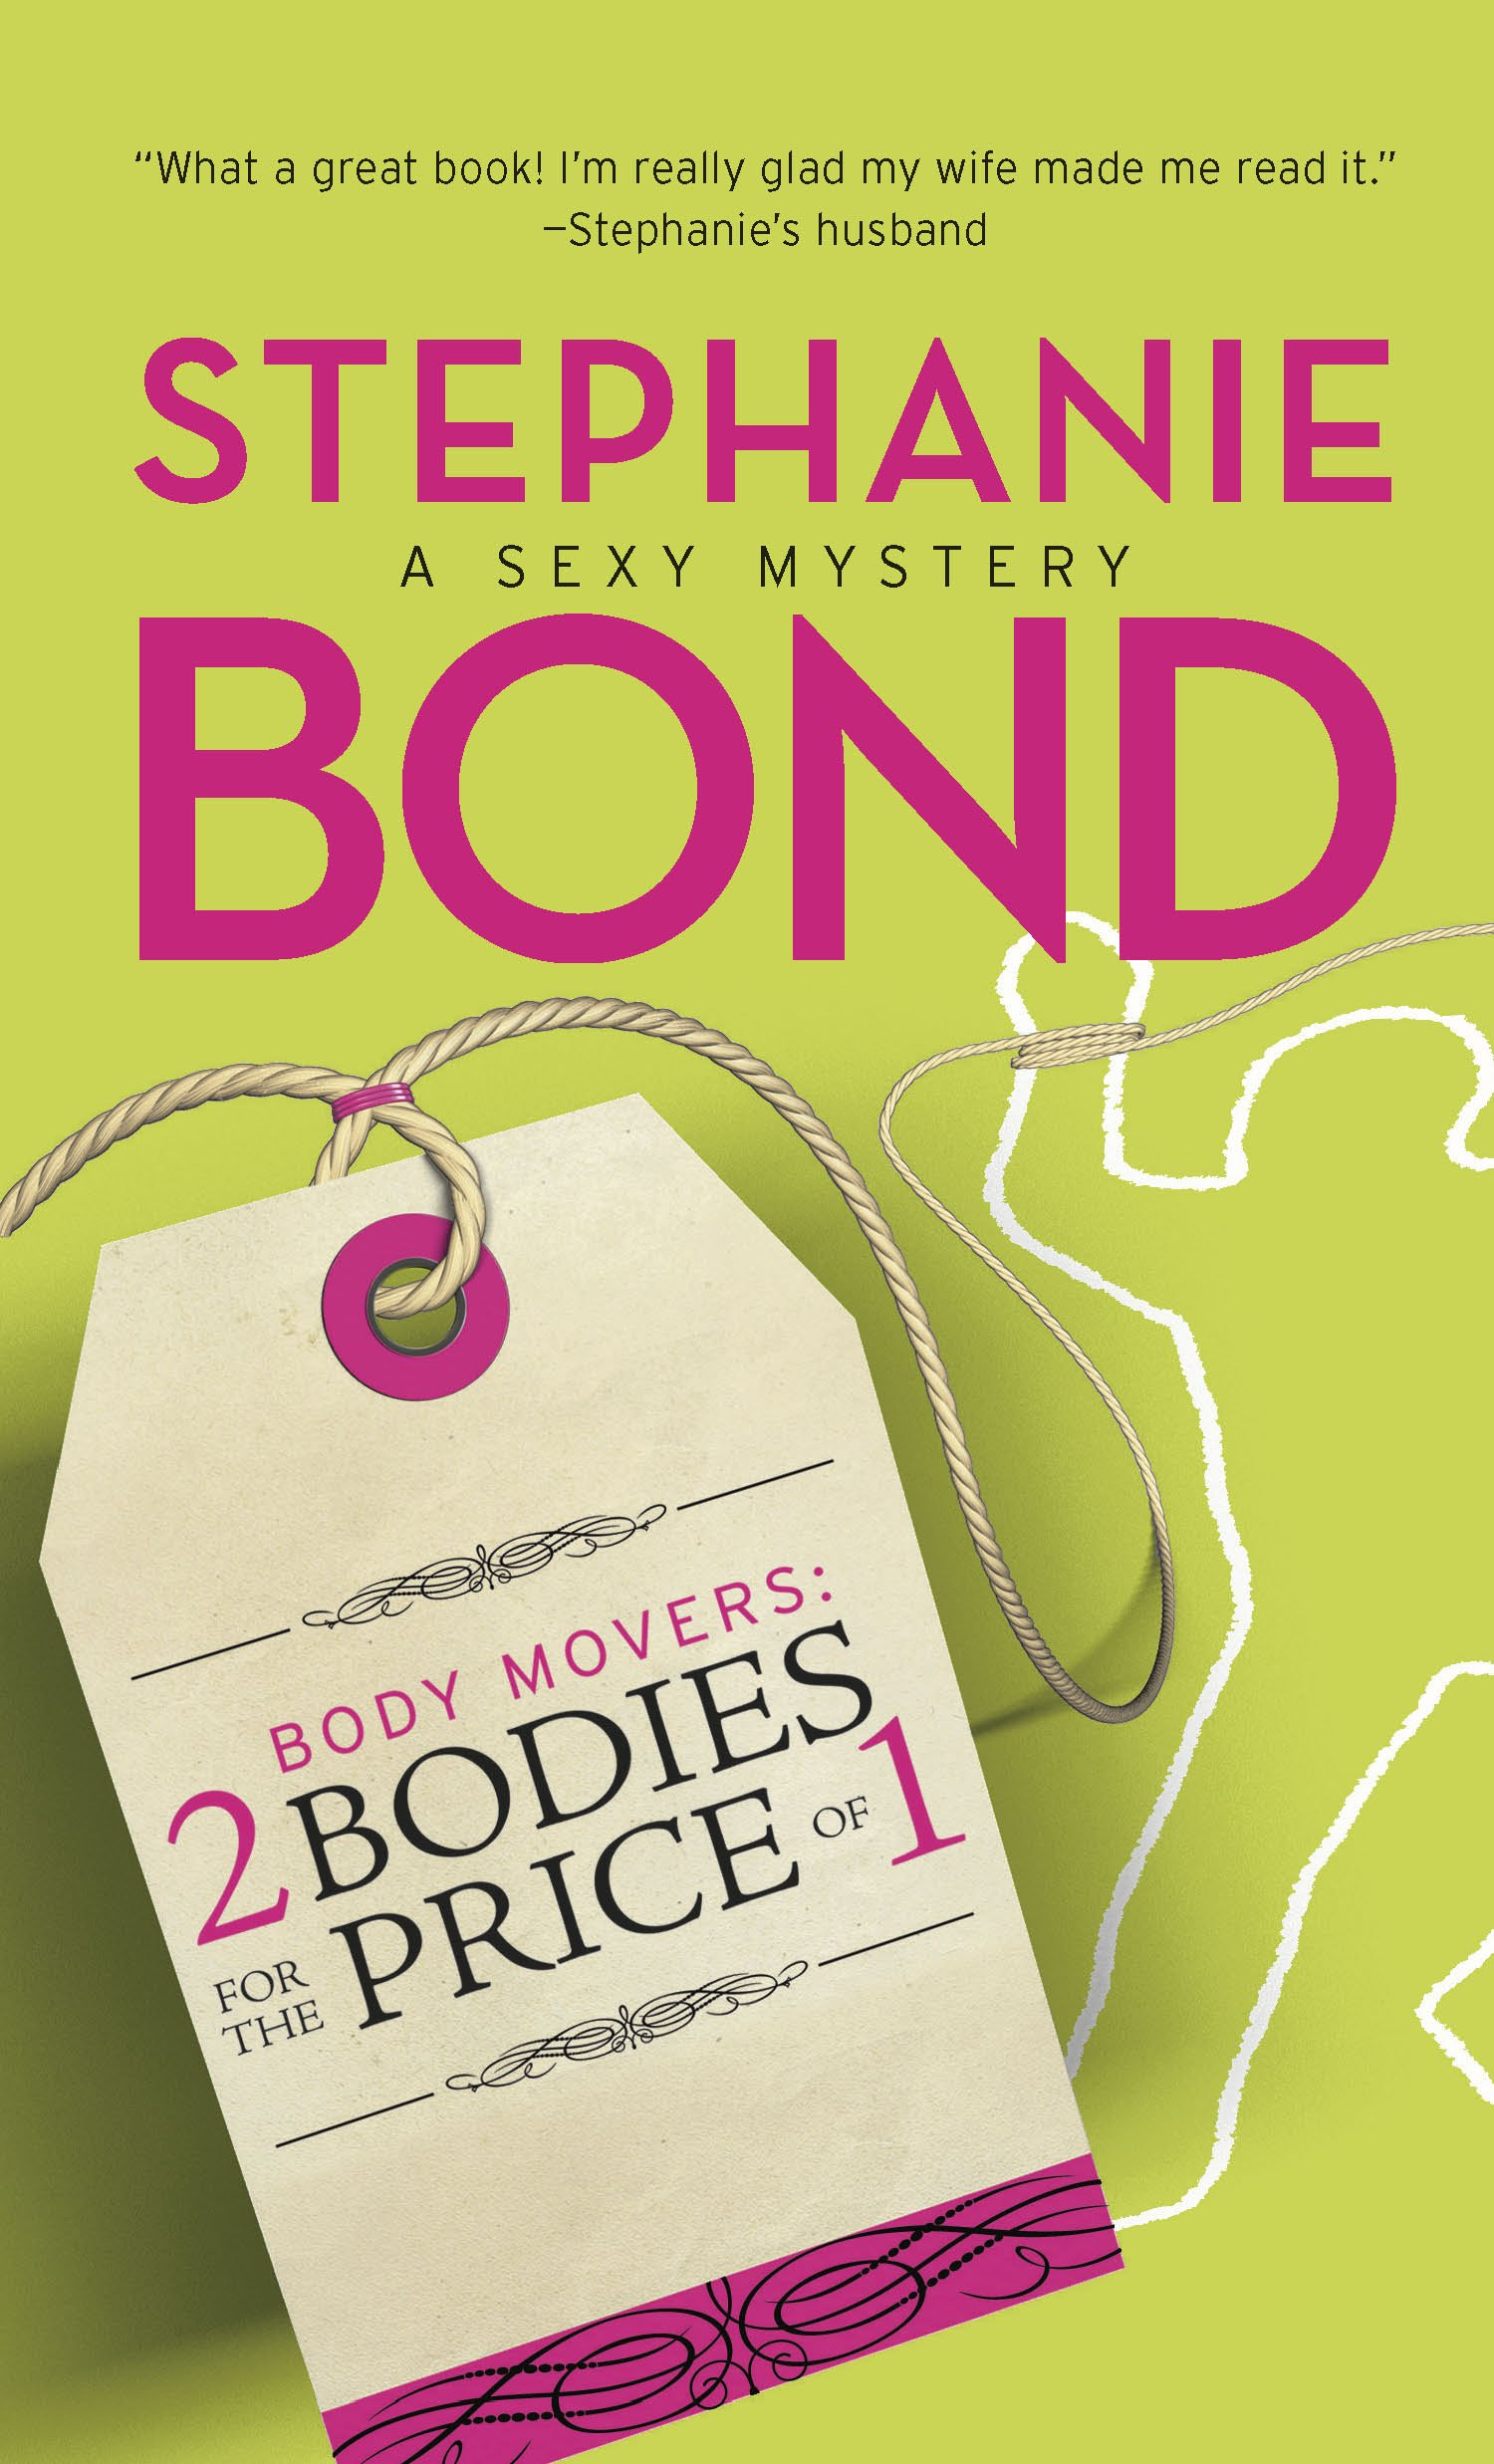 Body Movers: 2 Bodies for the Price of 1 (Body Movers Novel): Amazon.co.uk: Stephanie  Bond: 9780778324843: Books